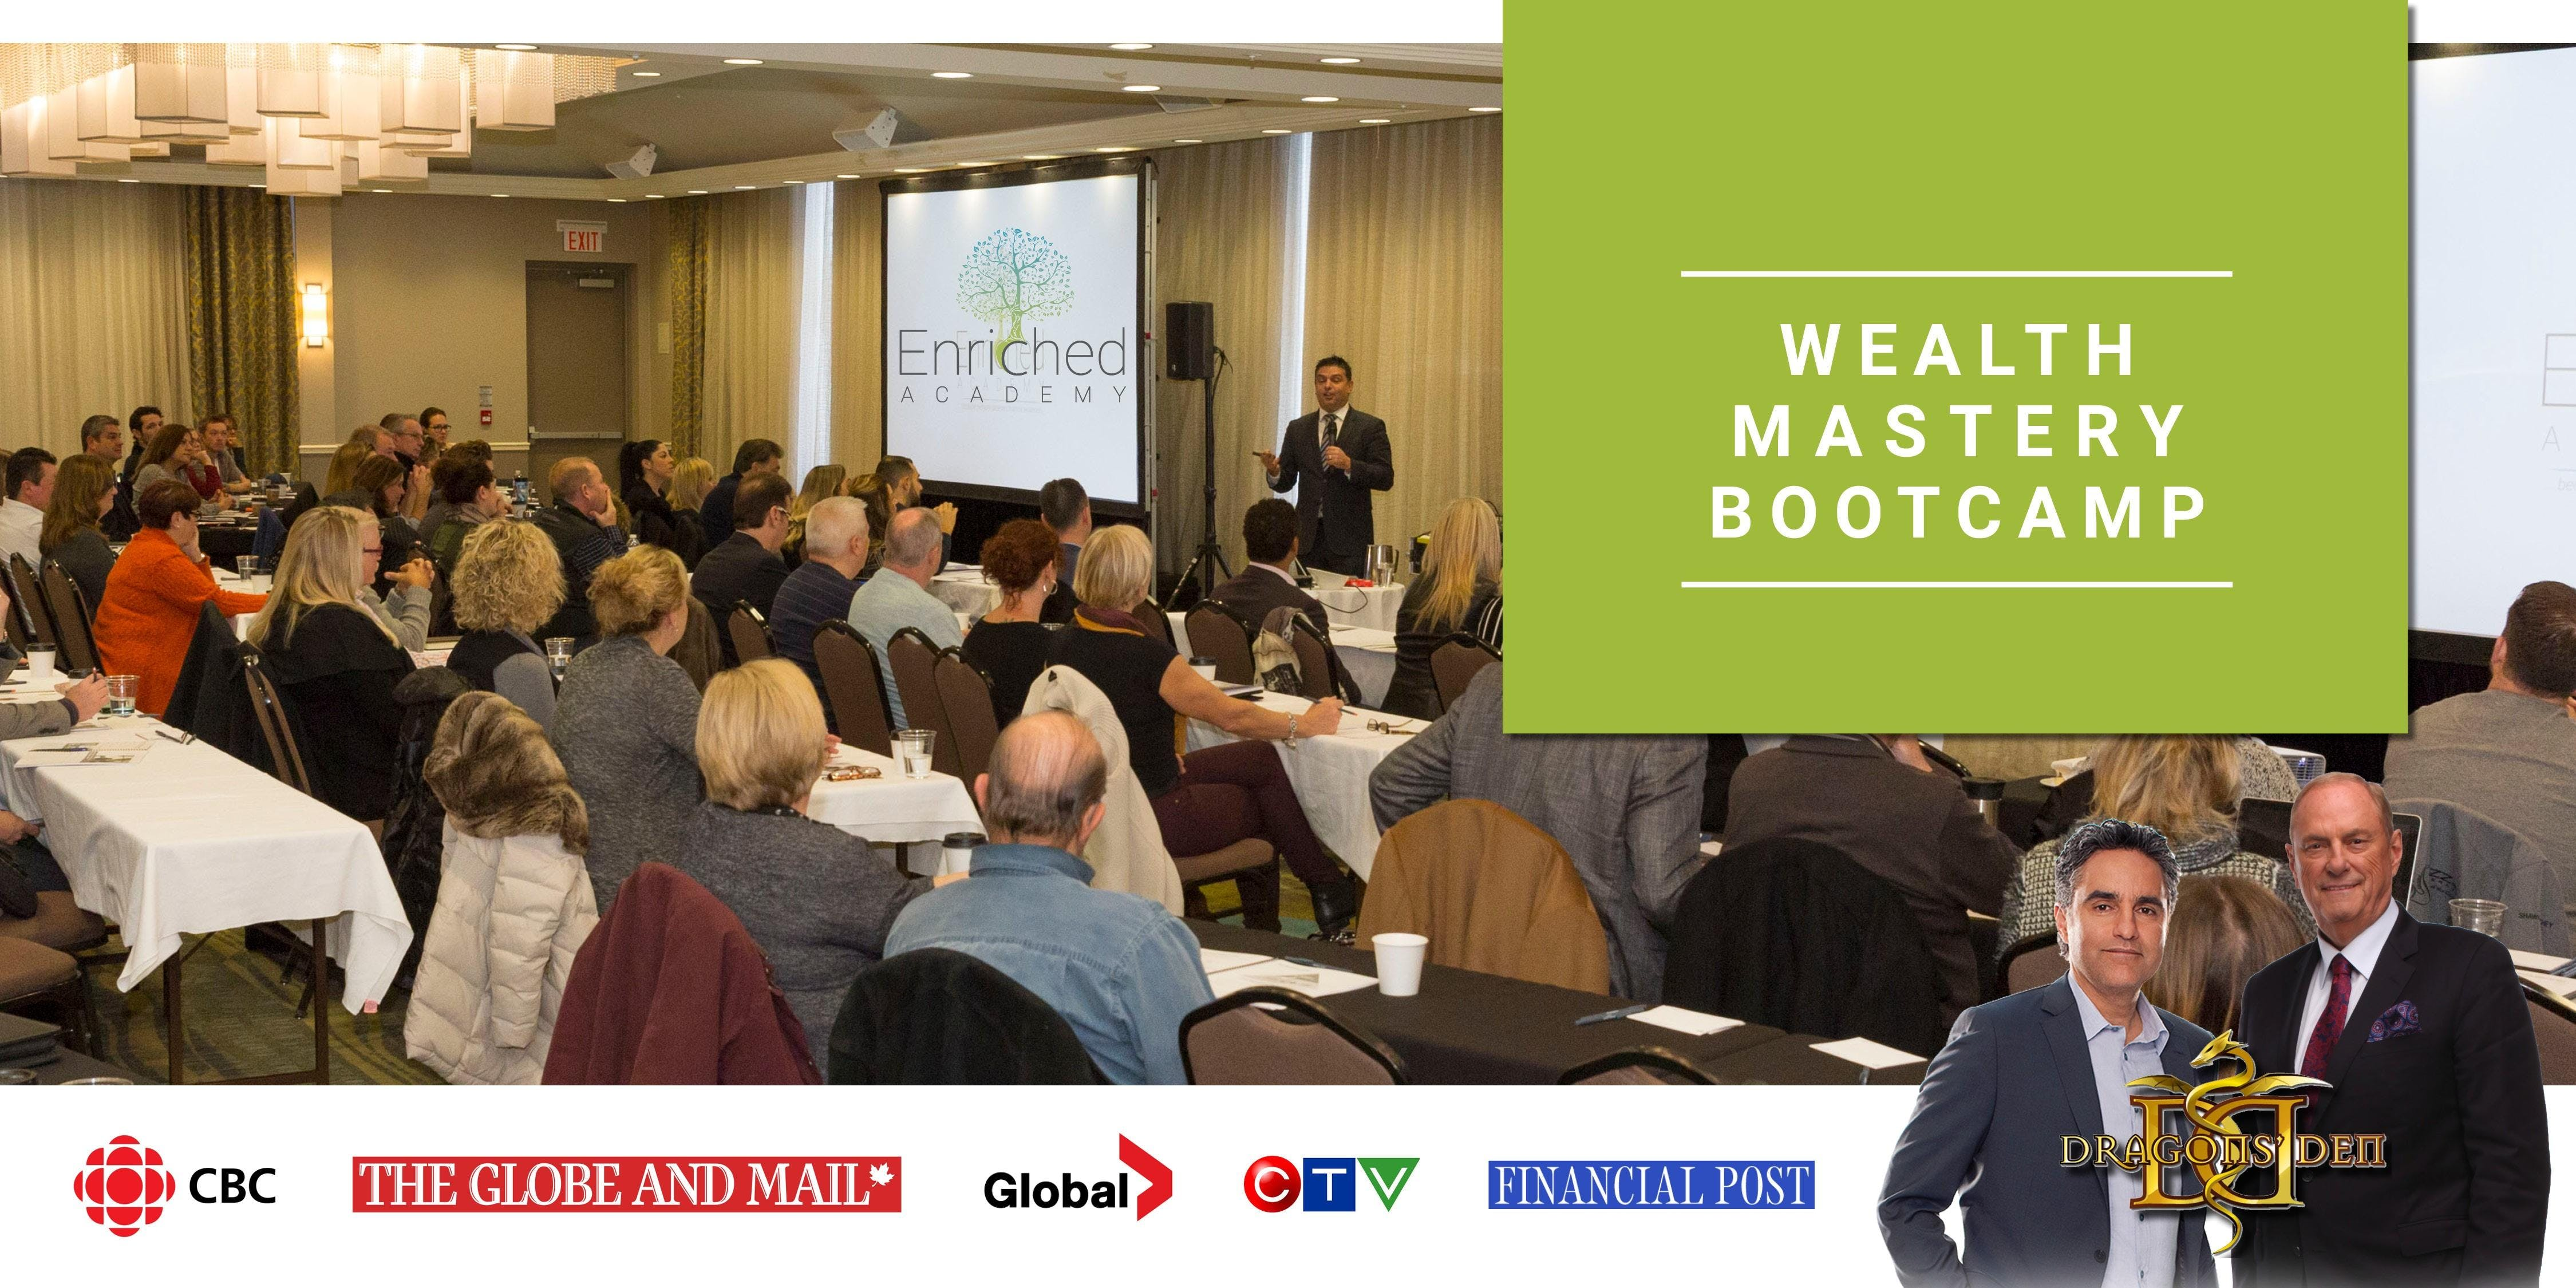 Wealth Mastery Bootcamp Ottawa Ontario